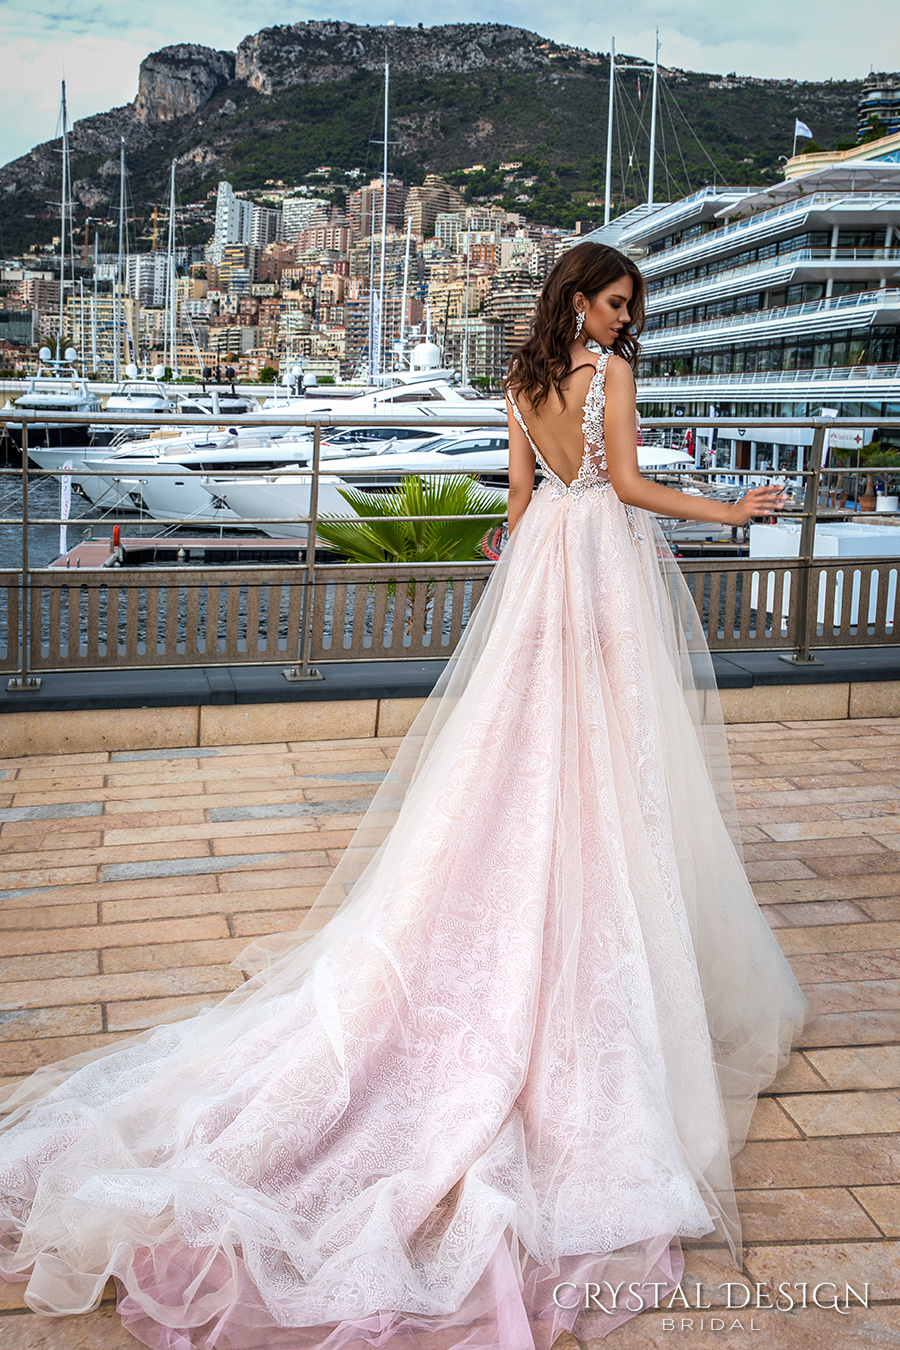 crystal-design-2017-bridal-sleeveless-v-neck-heavily-embellished-bodice-tulle-skirt-princess-romantic-blush-color-a-line-wedding-dress-low-back-long-royal-train-andrea-bv